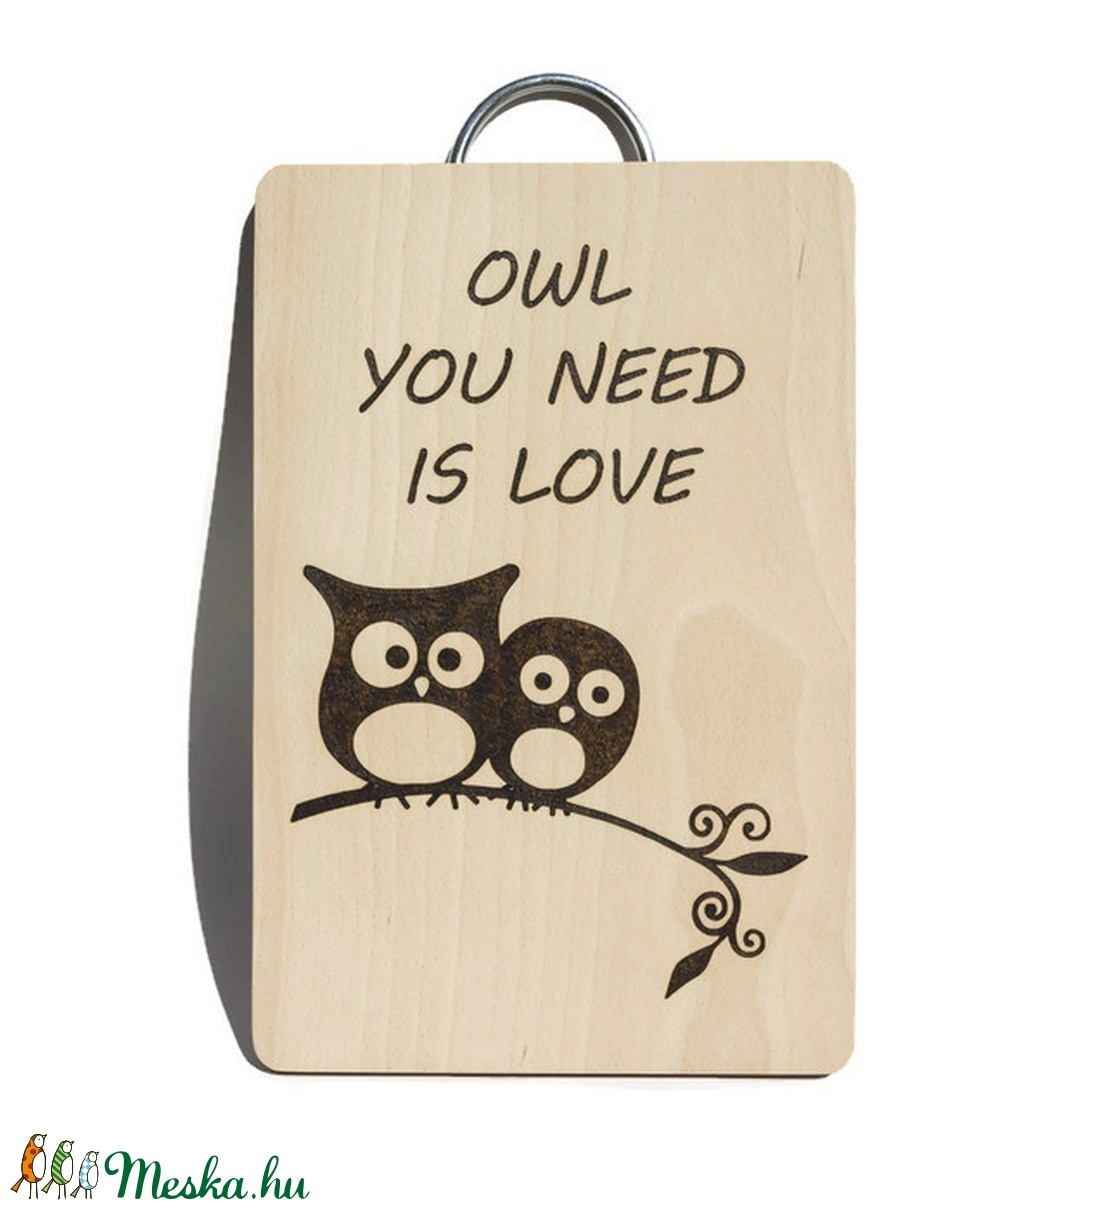 Owl you need is love (Revans) - Meska.hu